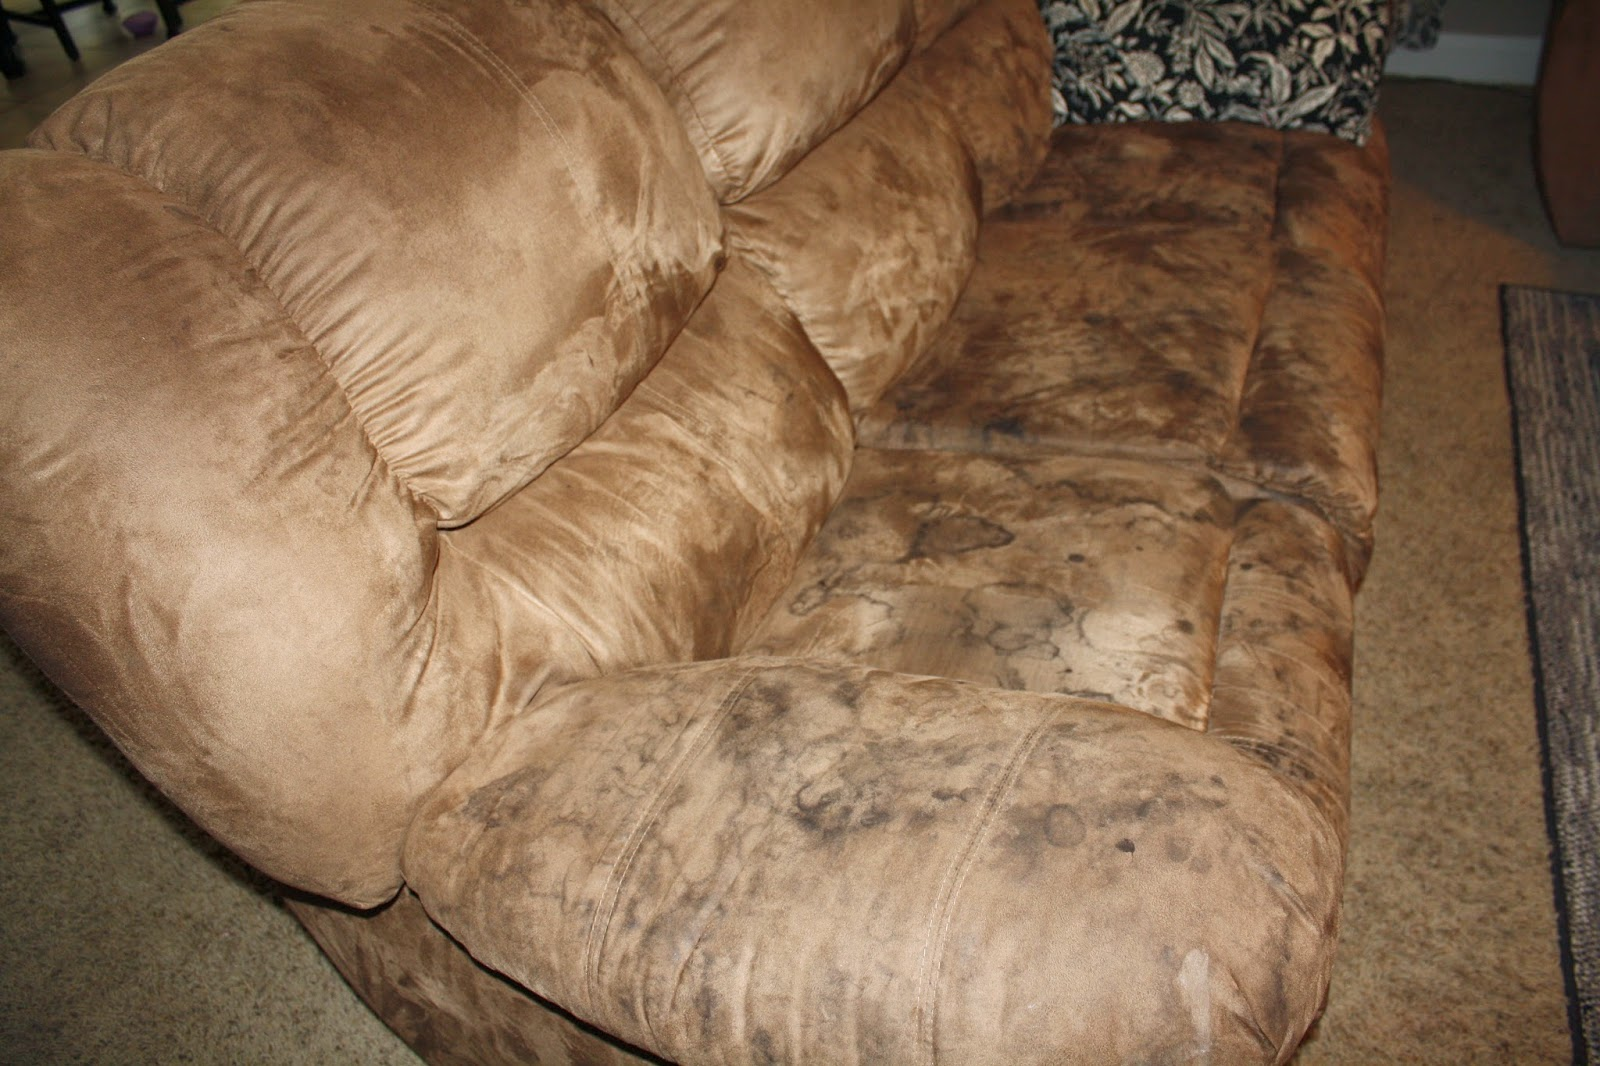 Couch Gross Tada S Kooky Kitchen How To Clean Microfiber Couches And Get The